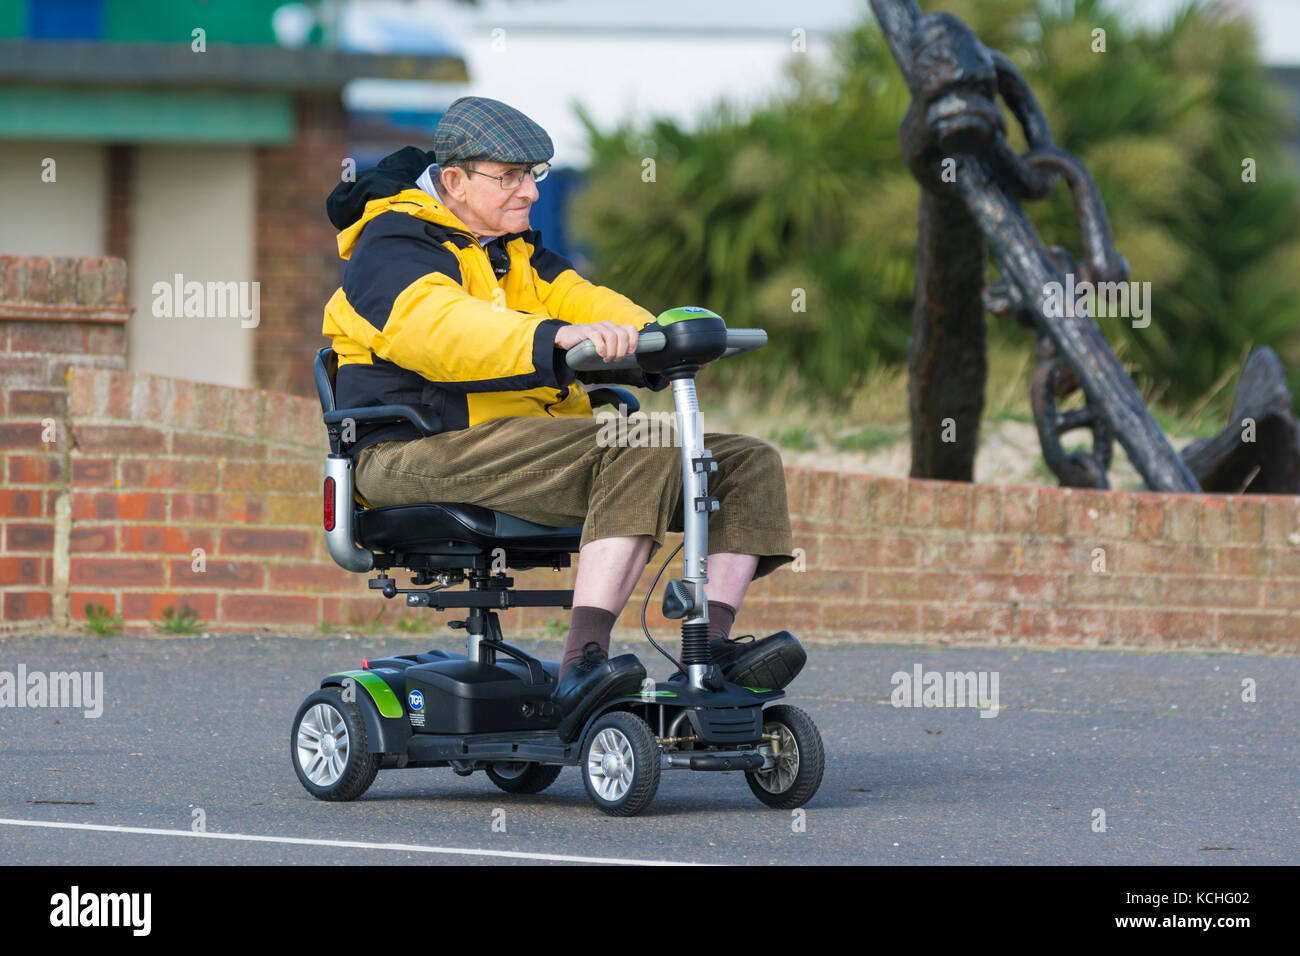 Elderly man riding on an electrically powered mobility scooter, in the UK. - Stock Image